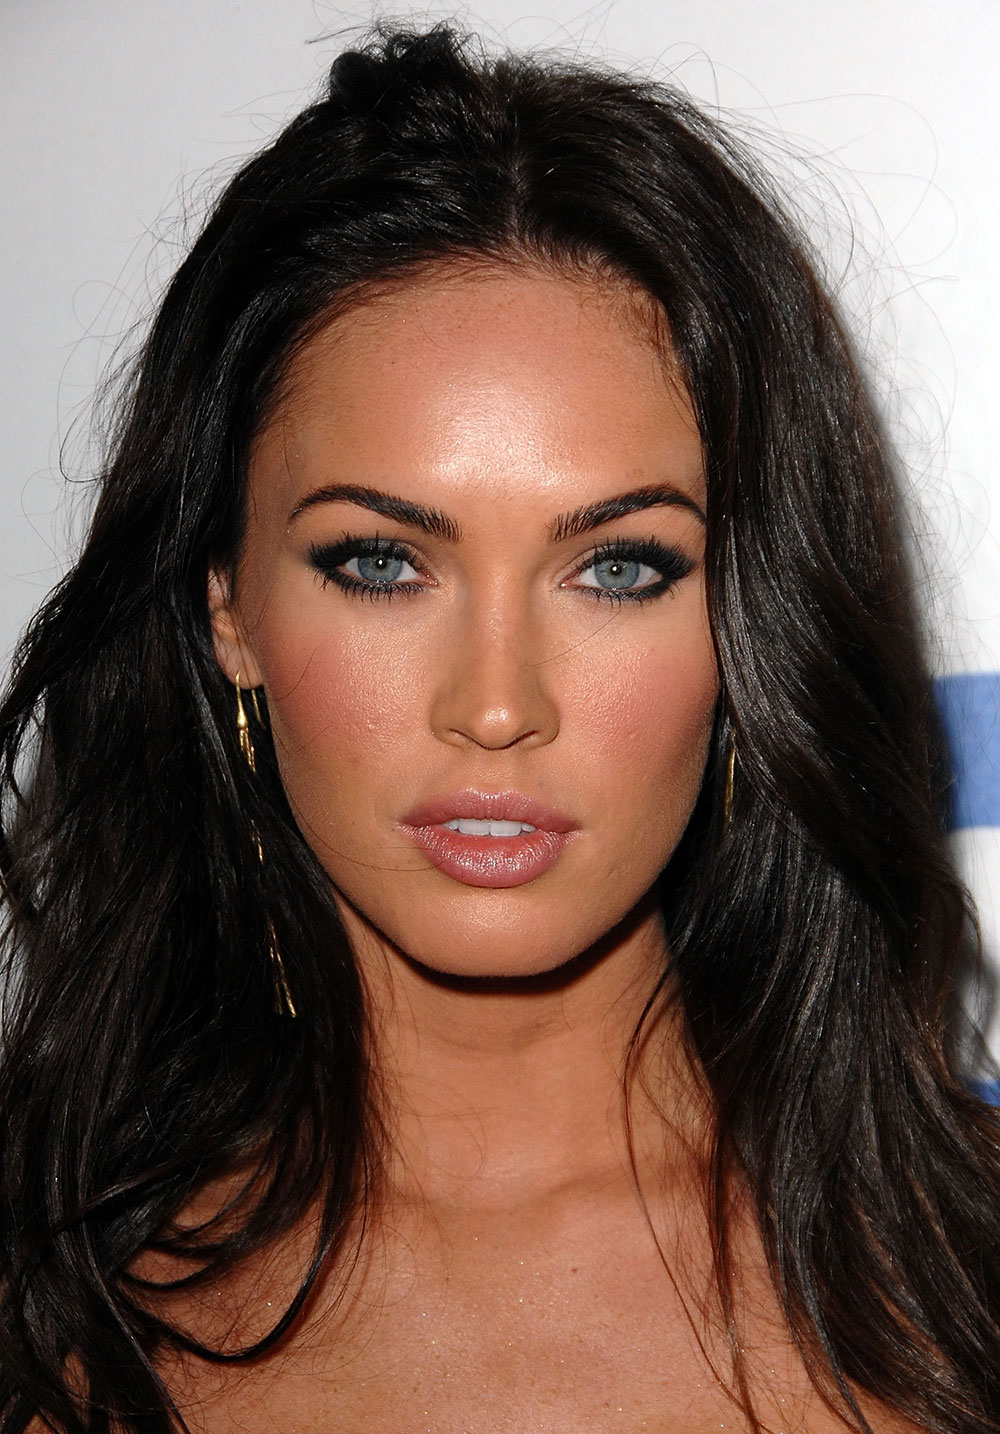 How To Get Perfect Eyebrows Like Megan Fox Makeup For Life